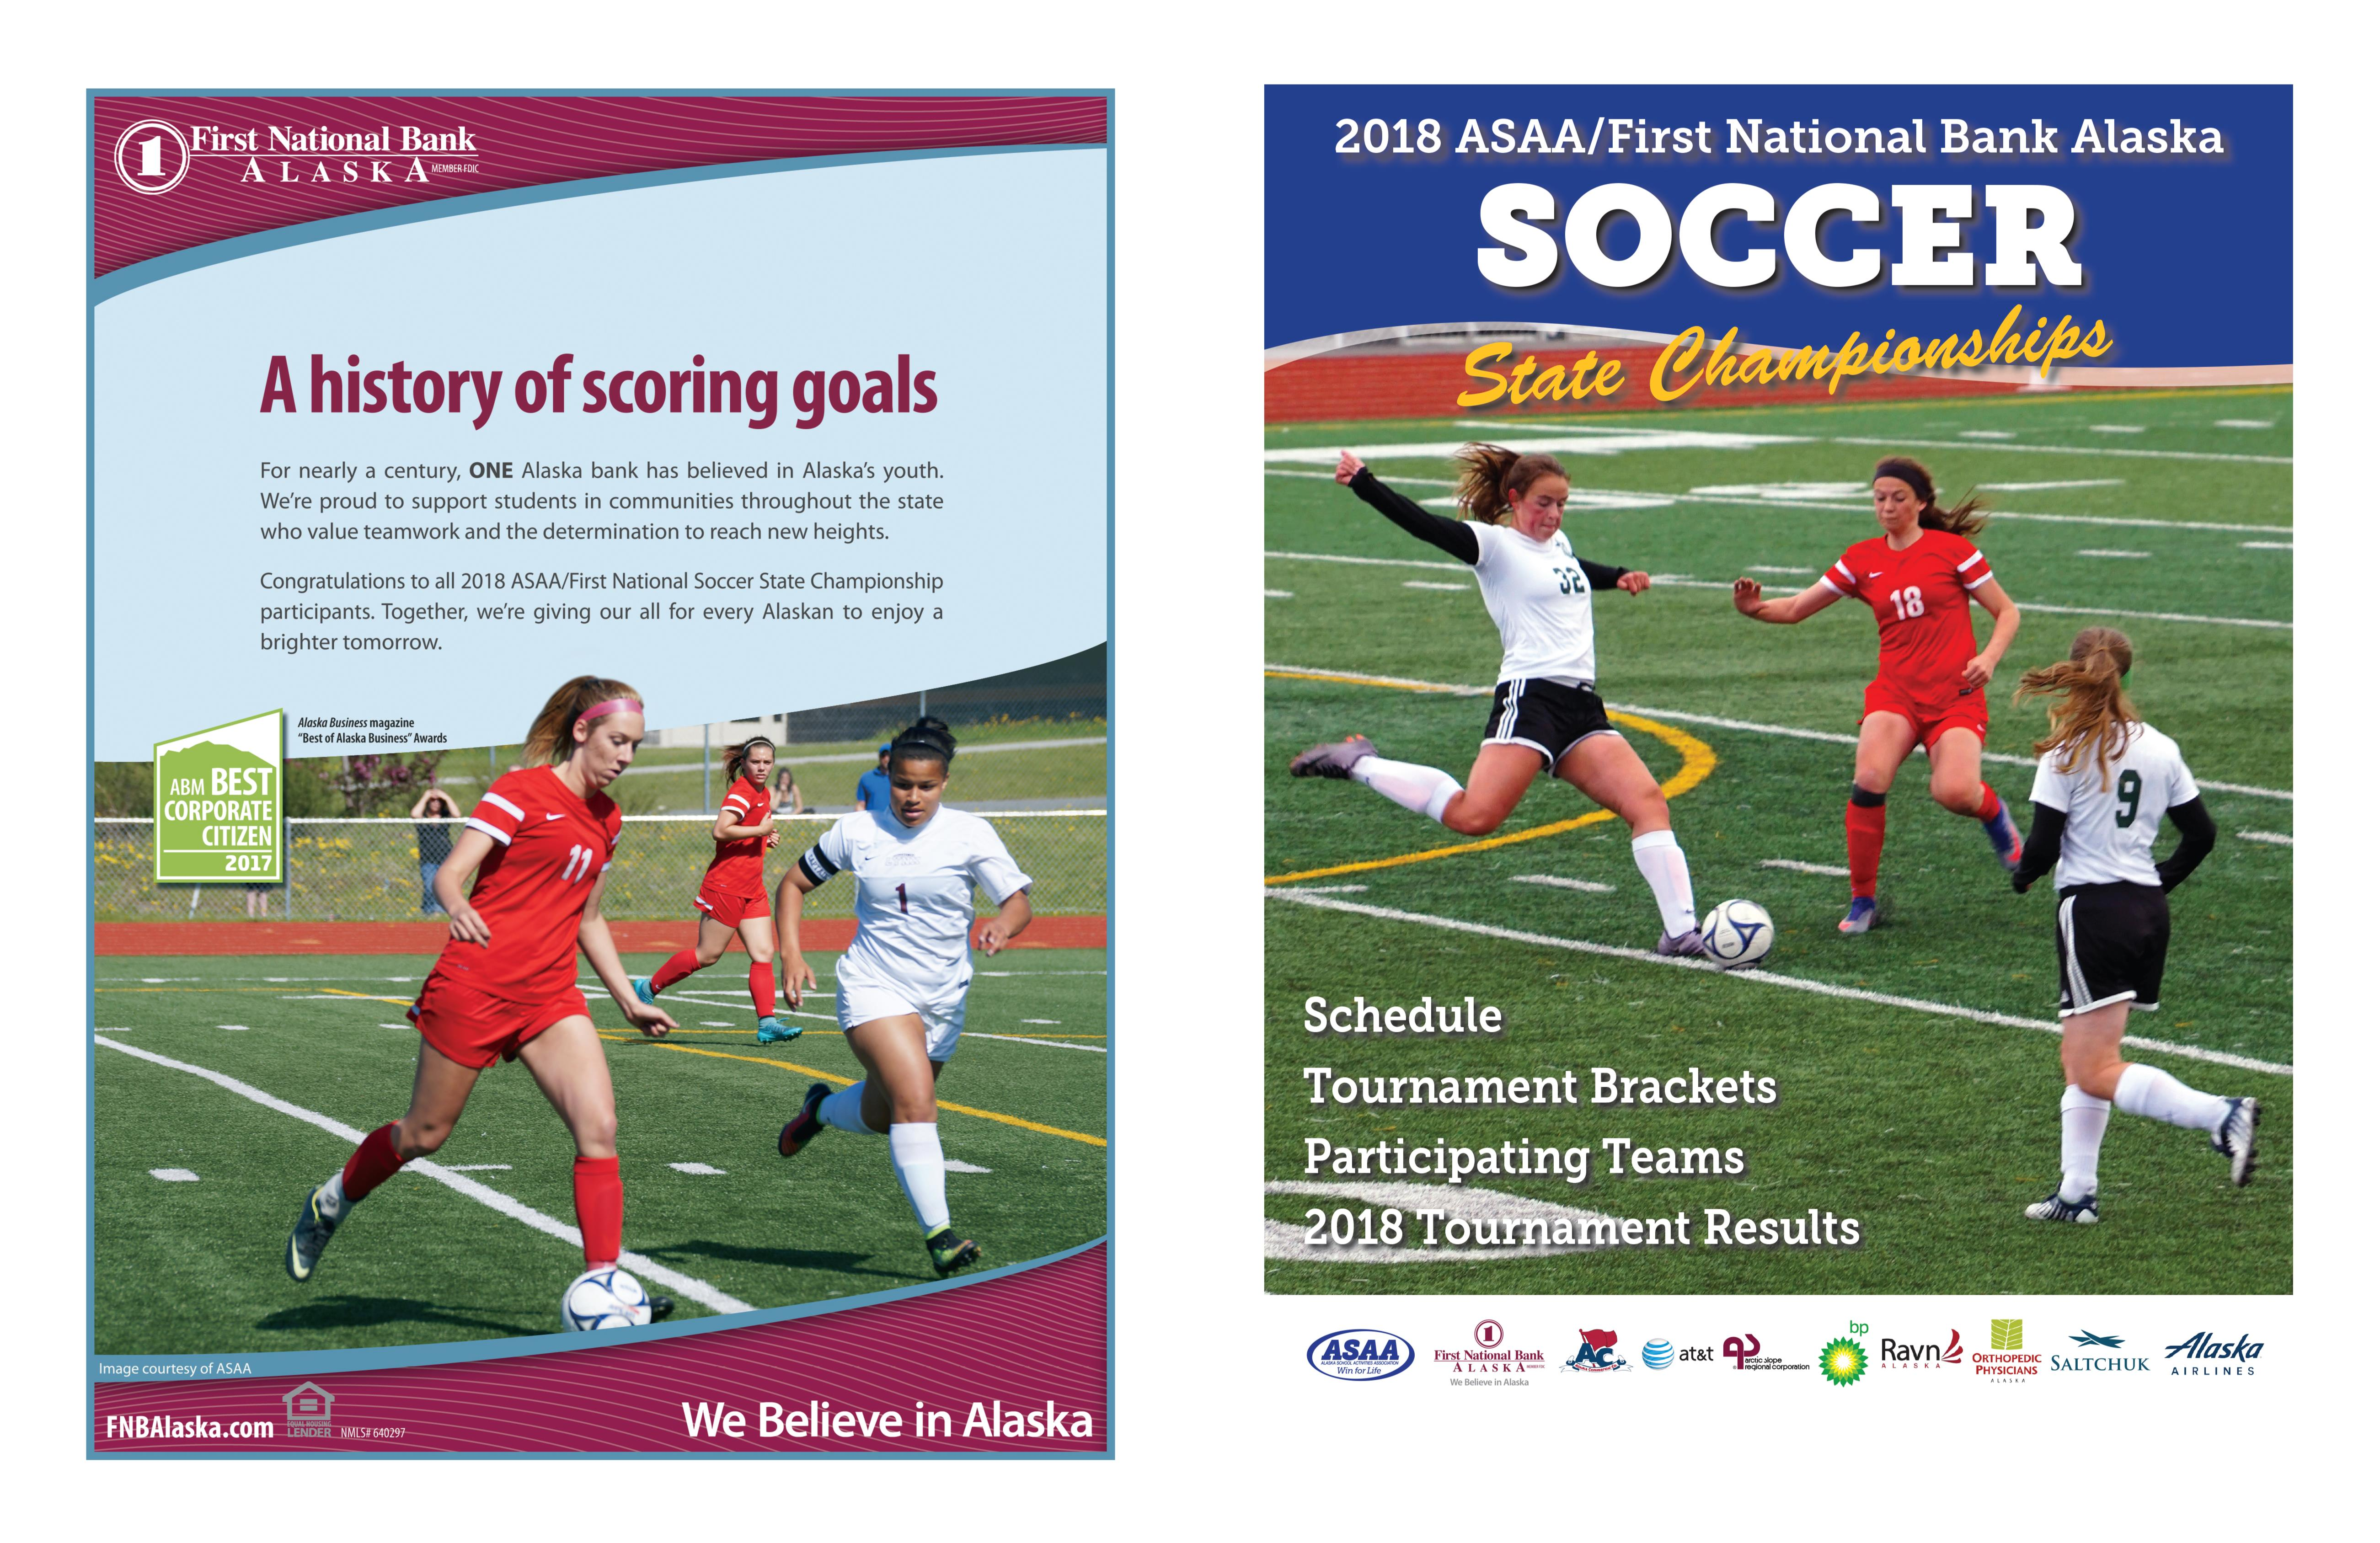 2018 ASAA/First National Bank Alaska Soccer State Championship Program cover image